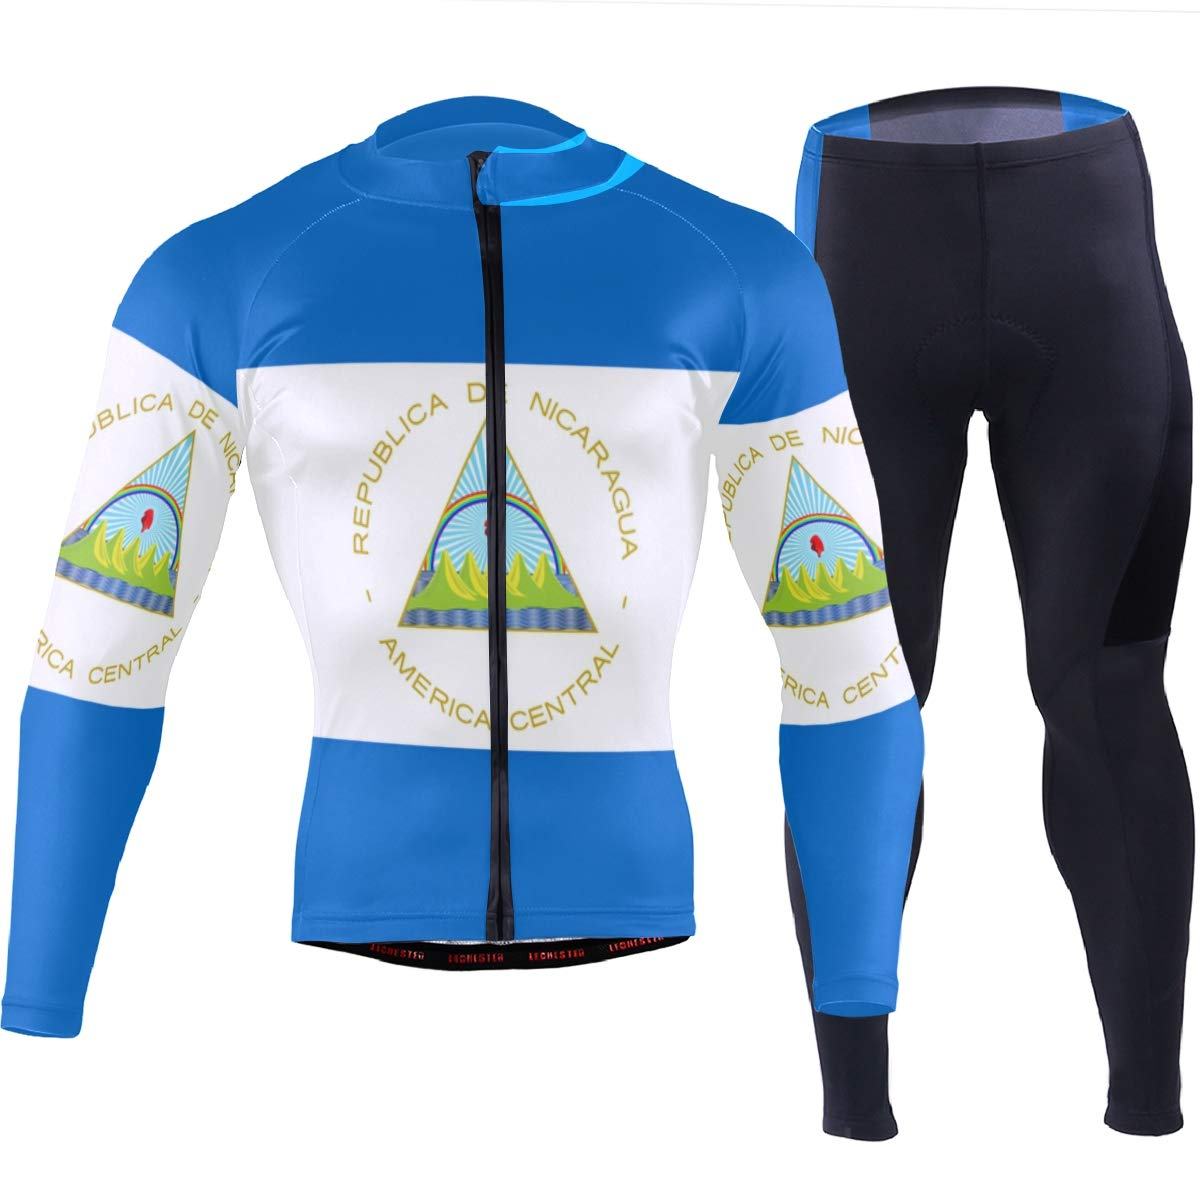 CHINEIN Men's Cycling Jersey Long Sleeve with 3 Rear Pockets Suit Nicaragua Flag by CHINEIN